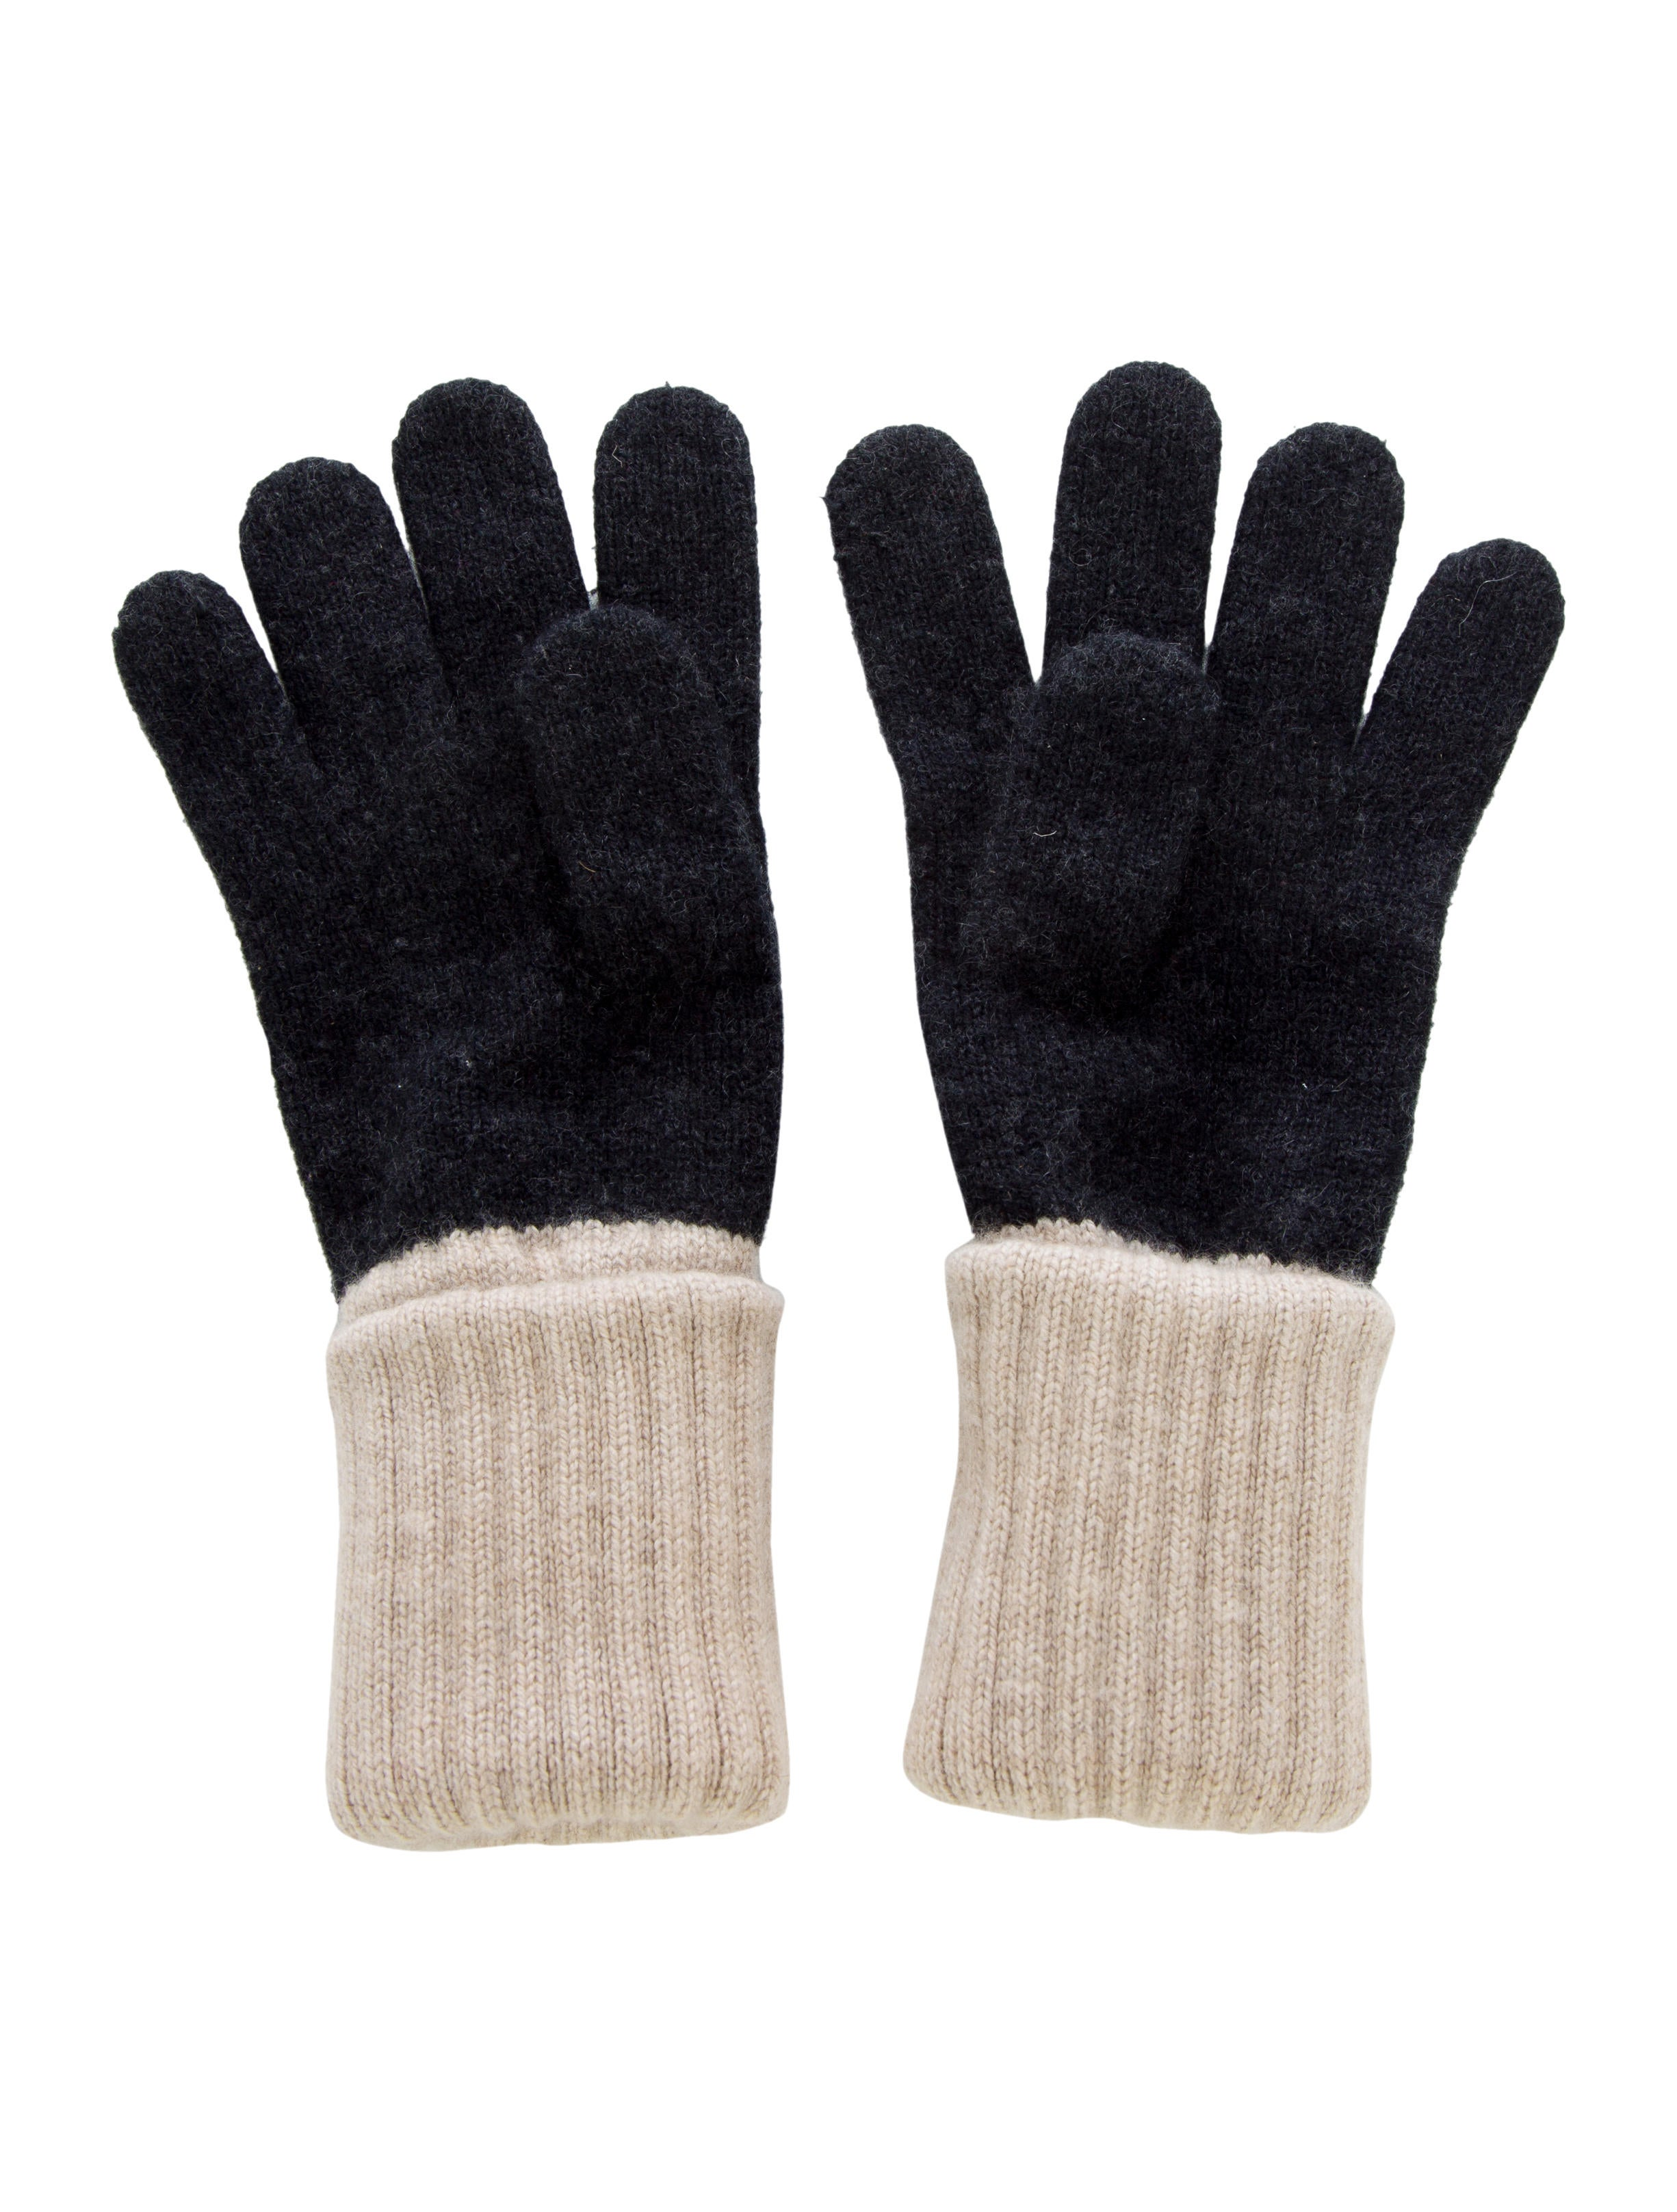 Chanel CC Cashmere Long Gloves - Accessories - CHA193941 ...